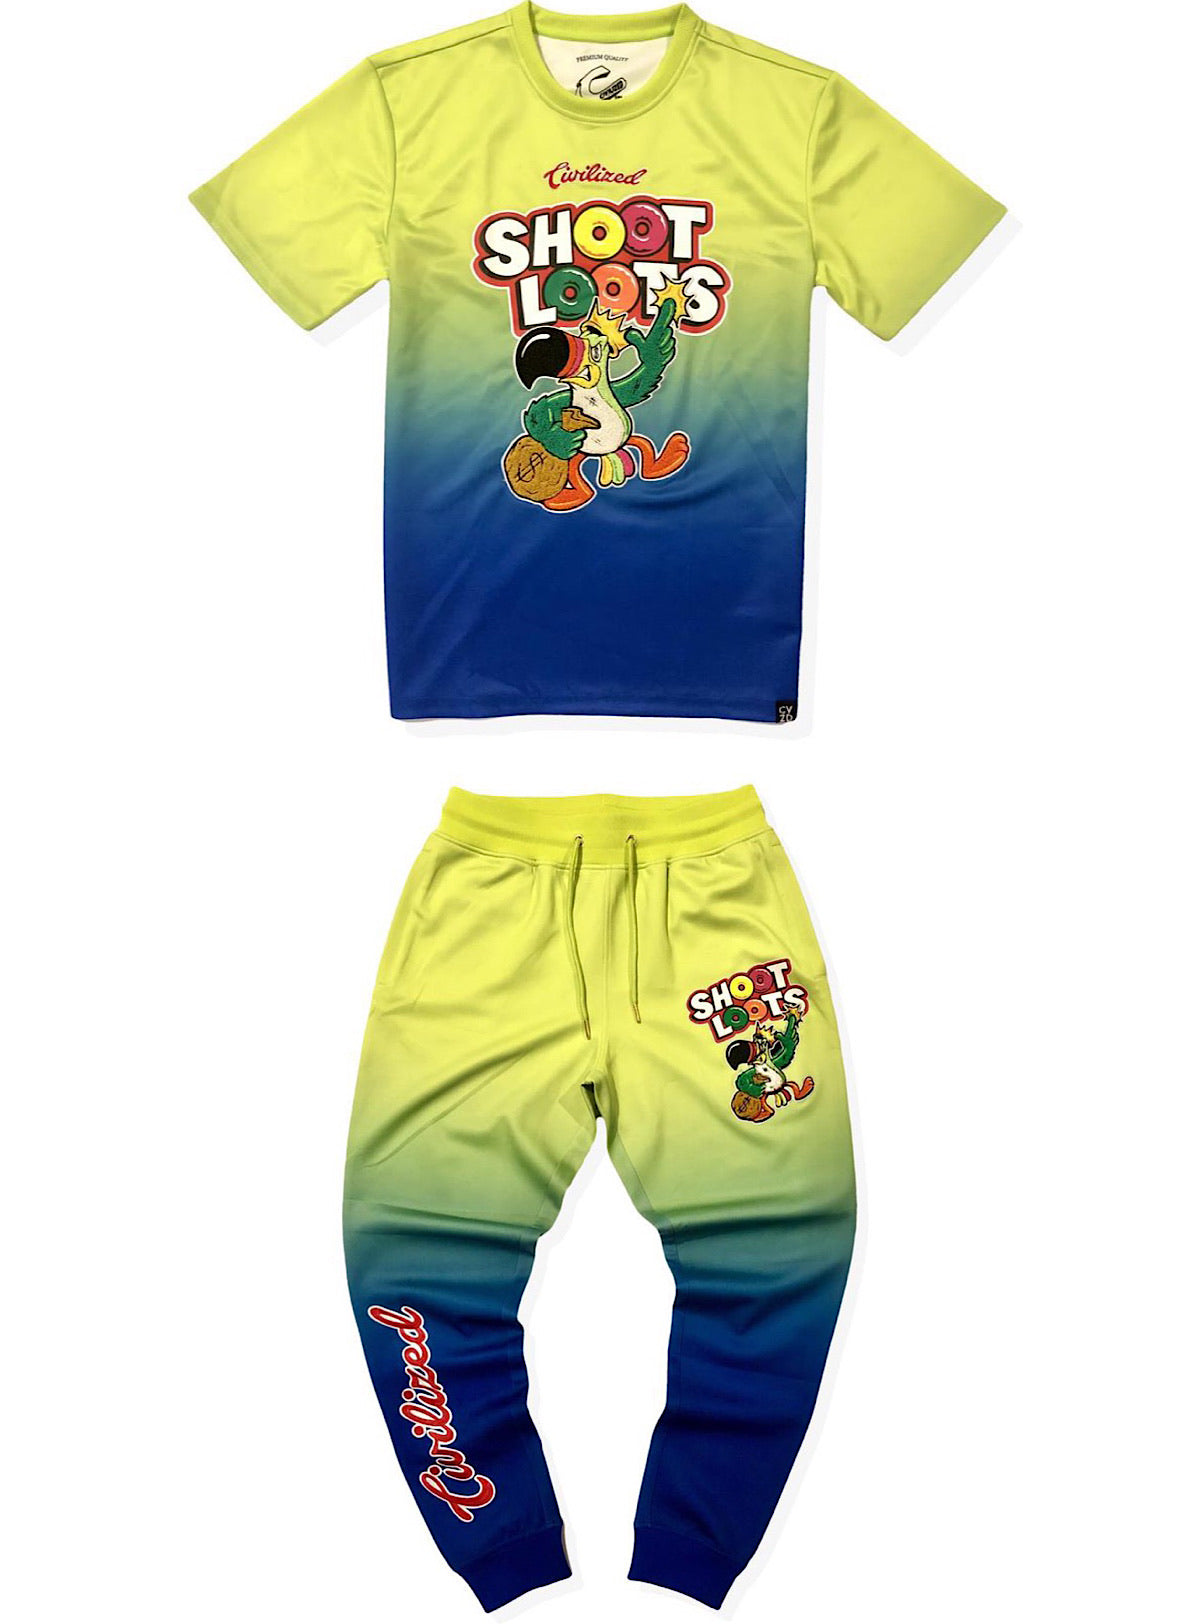 Civilized Jogger Set - Shoot Loots - Blue And Lime - CV2026